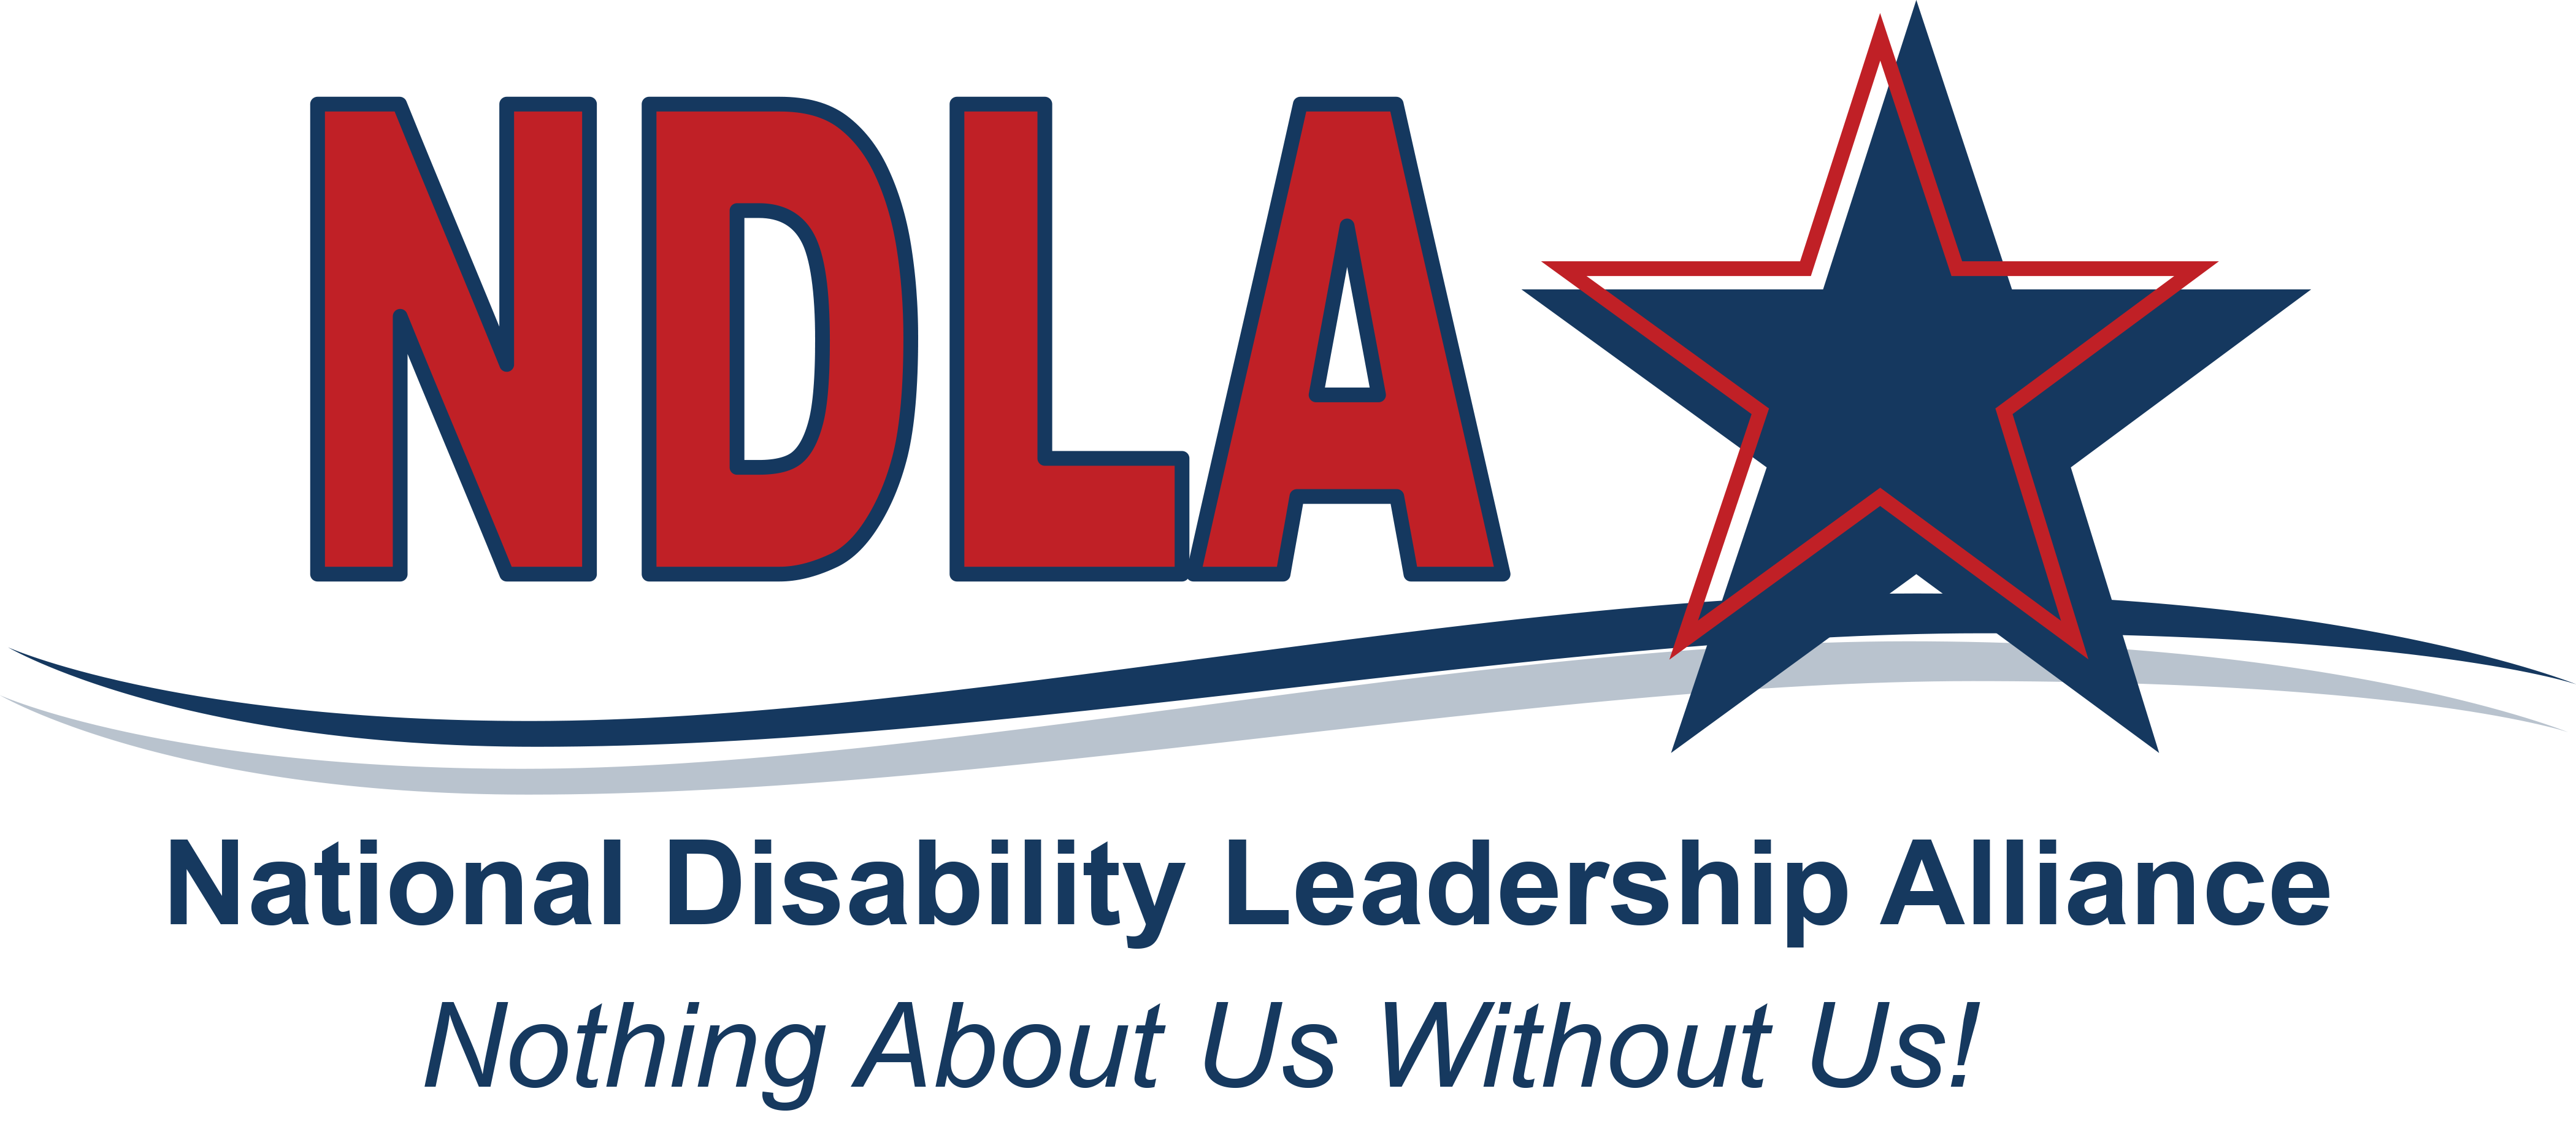 NDLA logo with red, white and blue colors